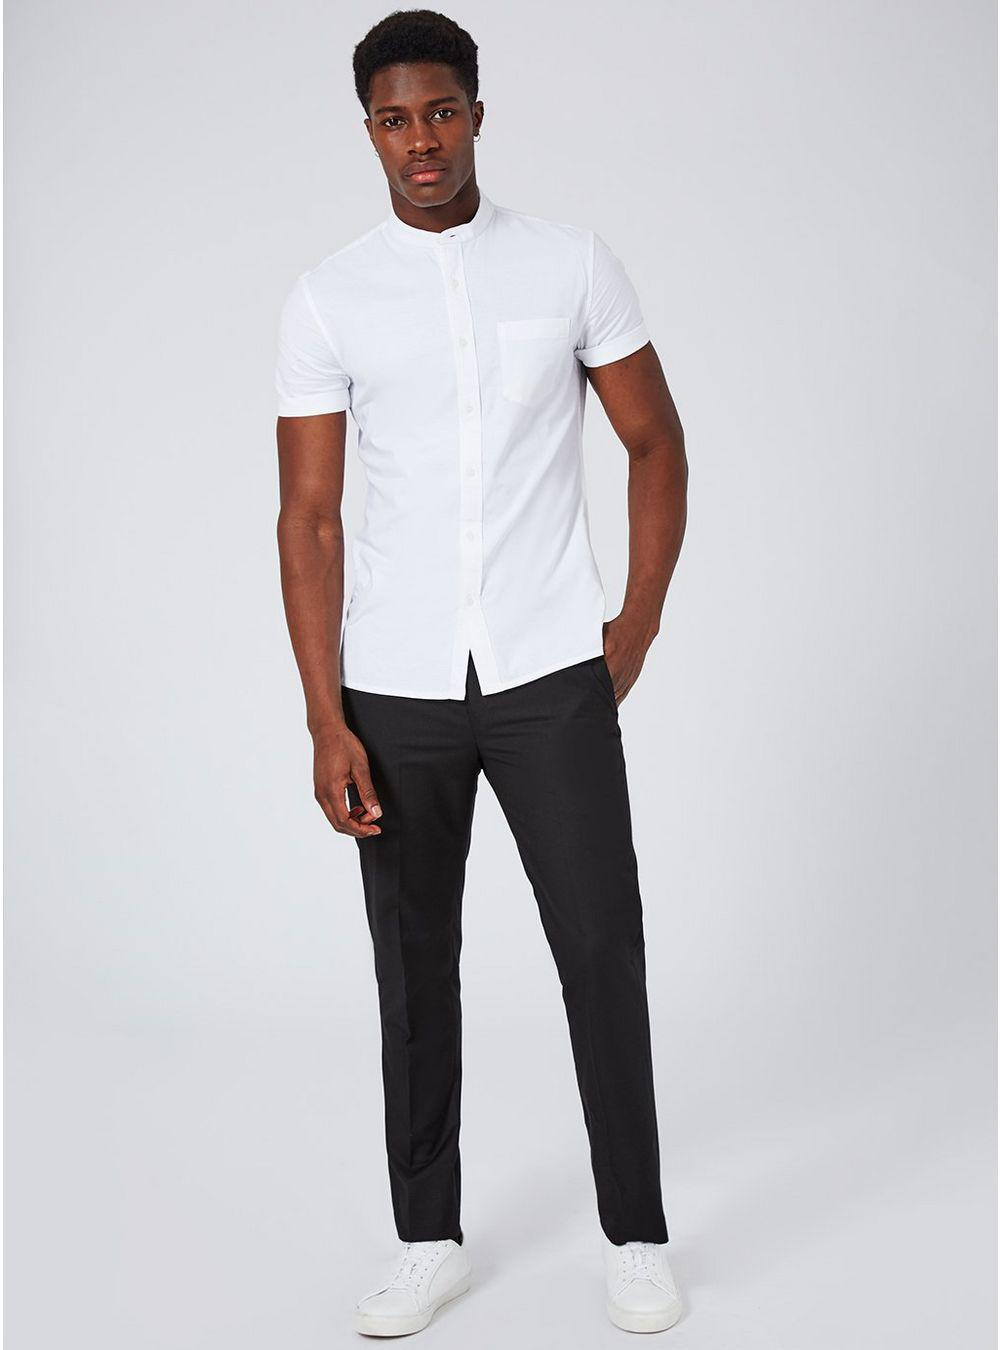 90dd75a2a6bb TOPMAN White Stand Collar Stretch Skinny Oxford Shirt in White for ...